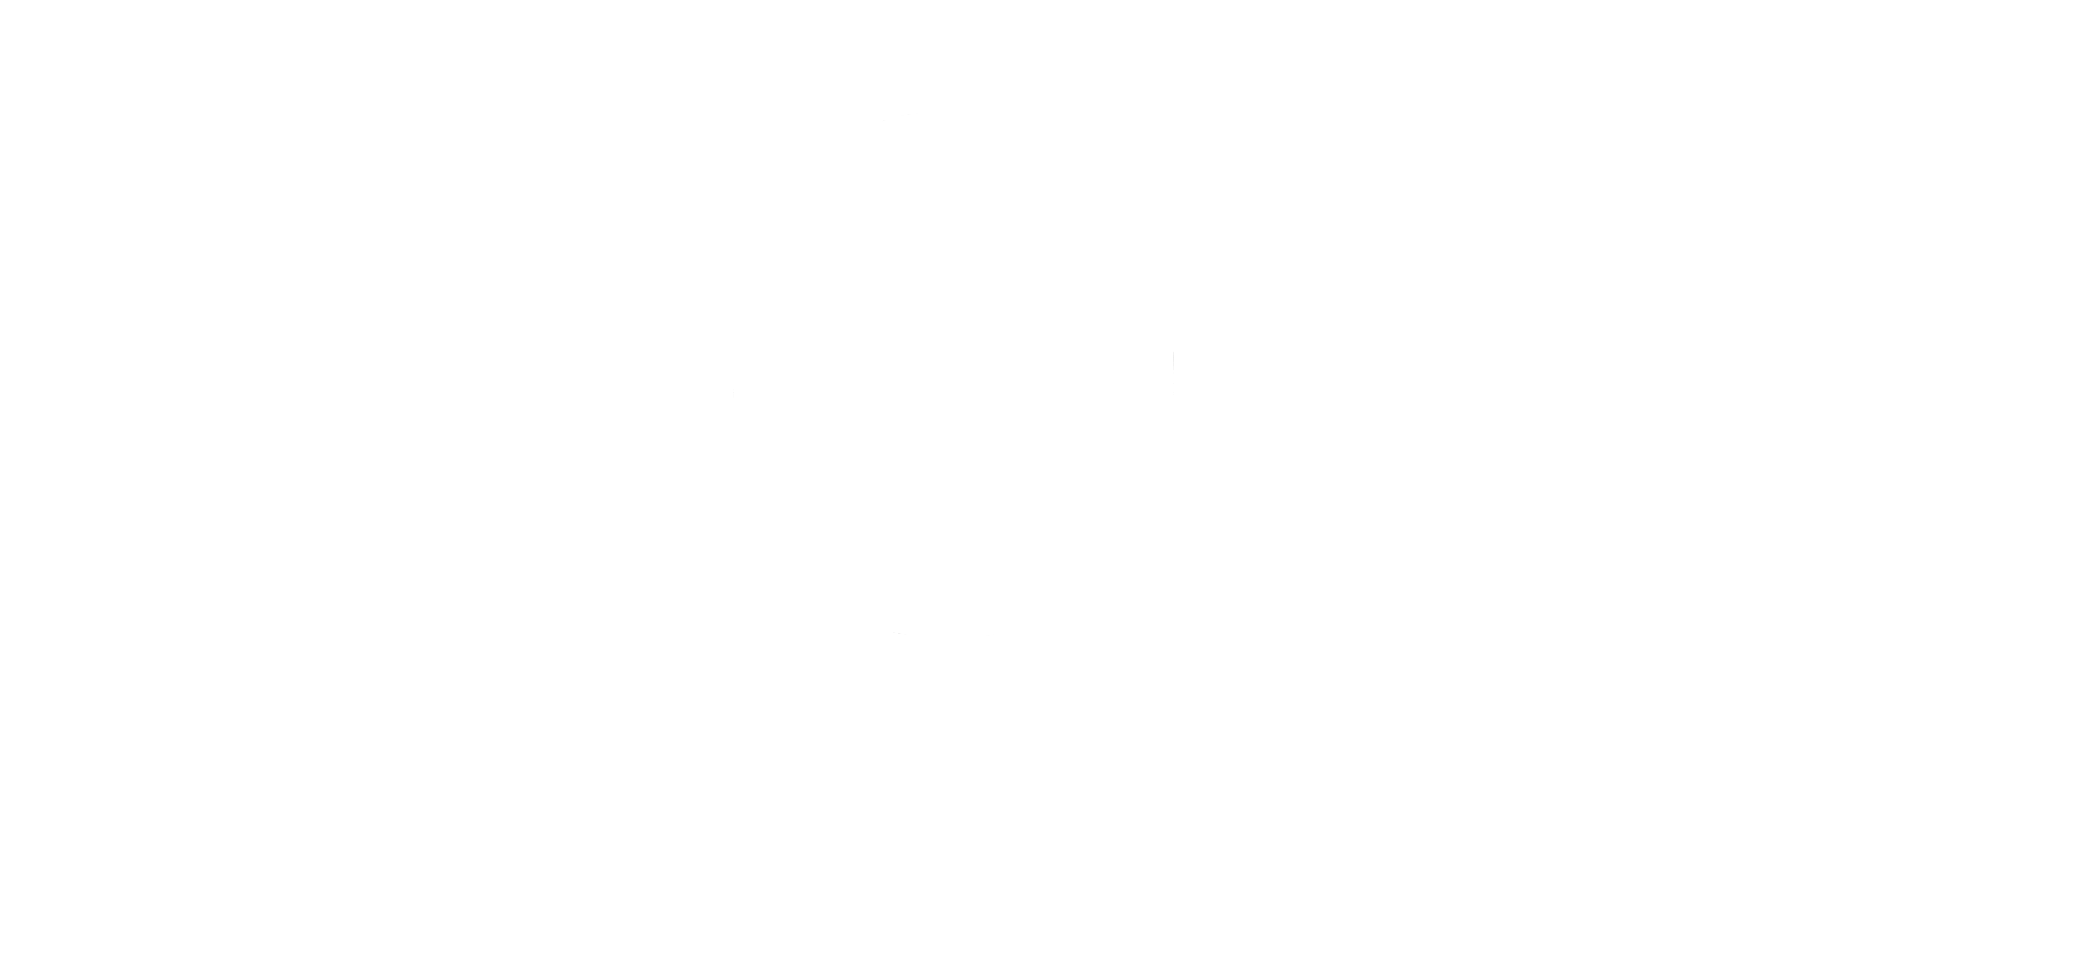 VOW by Ring Concierge logo